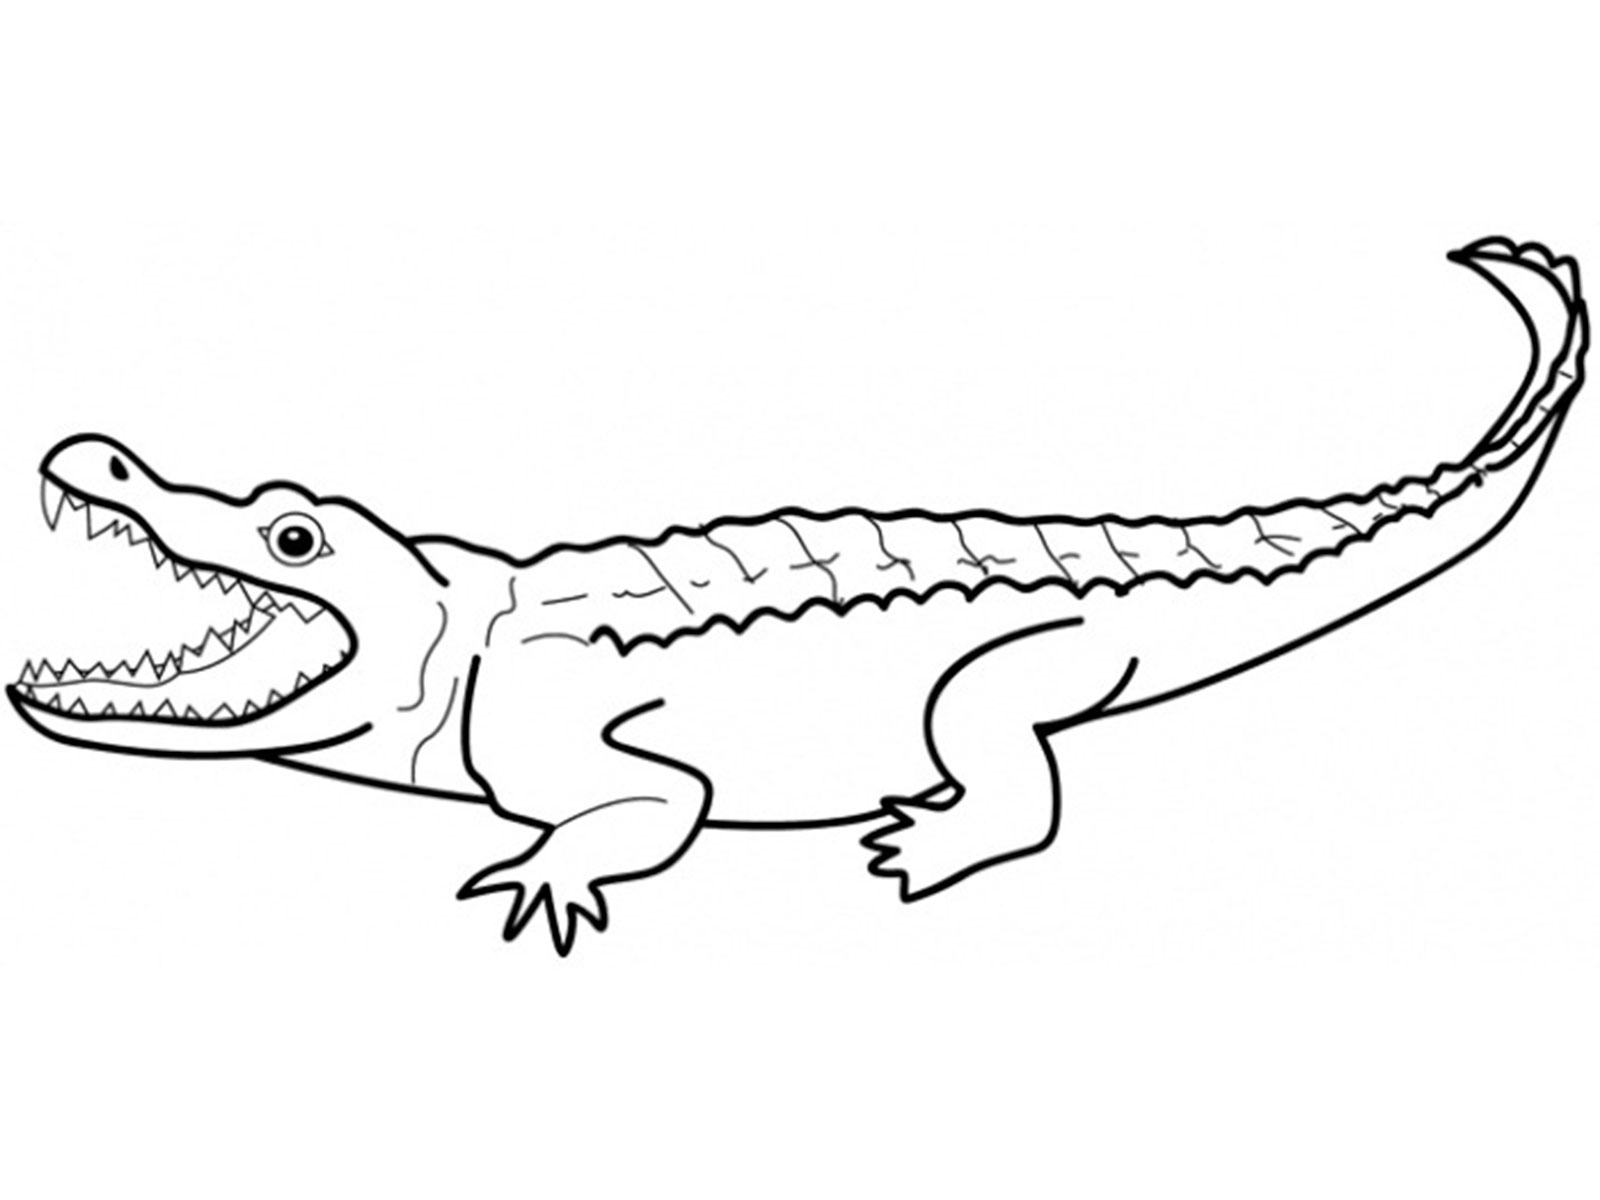 outline picture of crocodile crocodile outline free download on clipartmag outline of crocodile picture